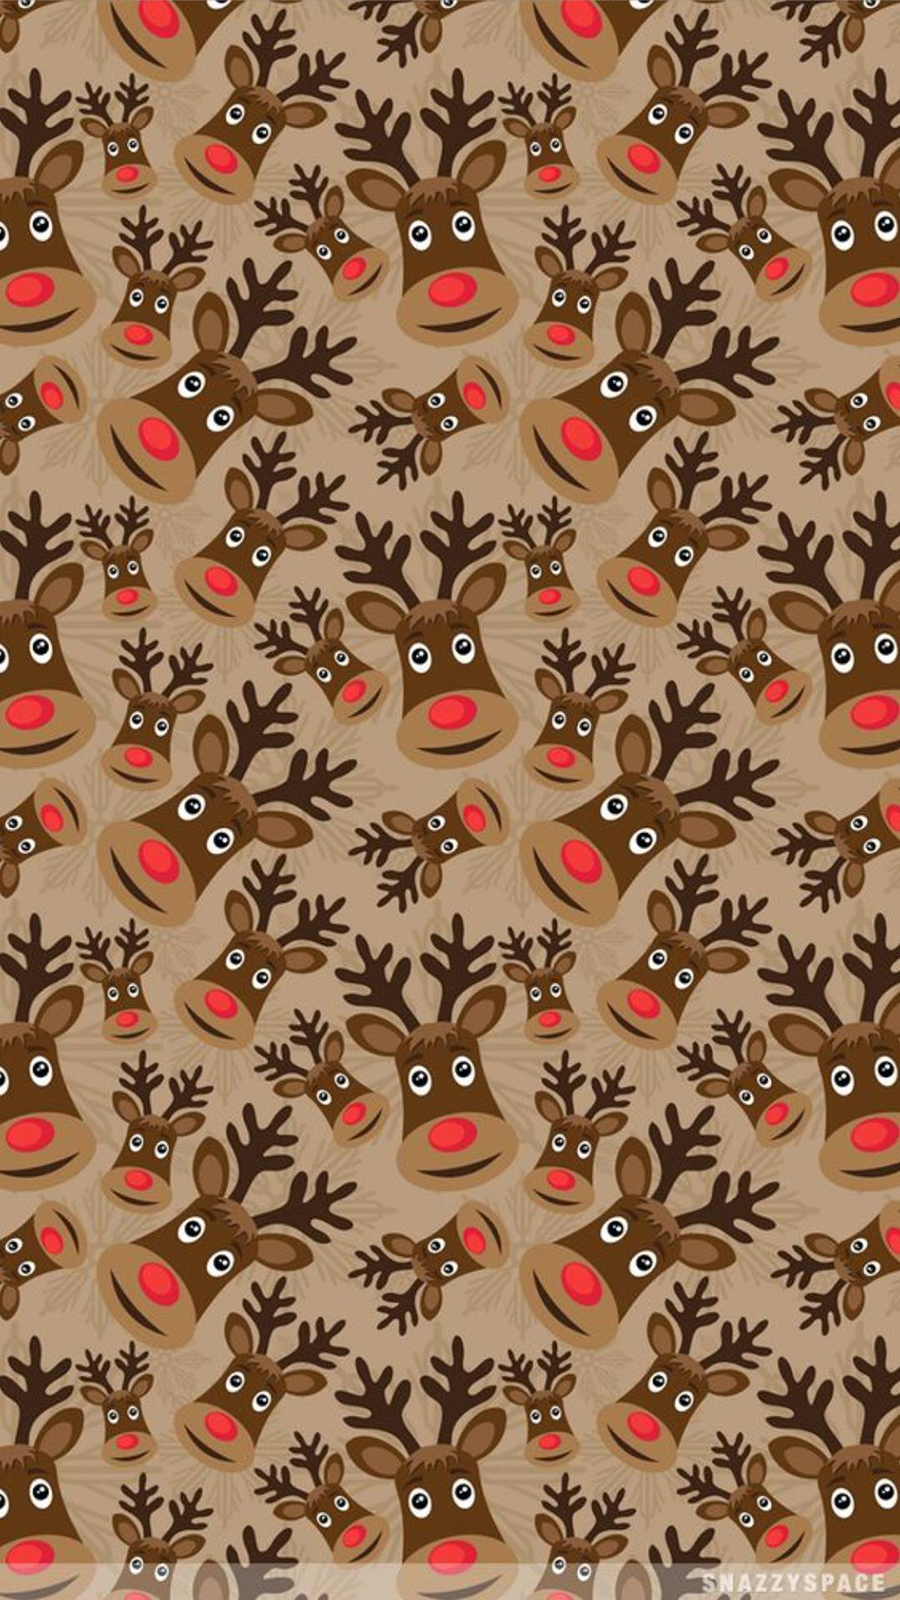 Rein Deer Wallpapers Free Download For Your Device